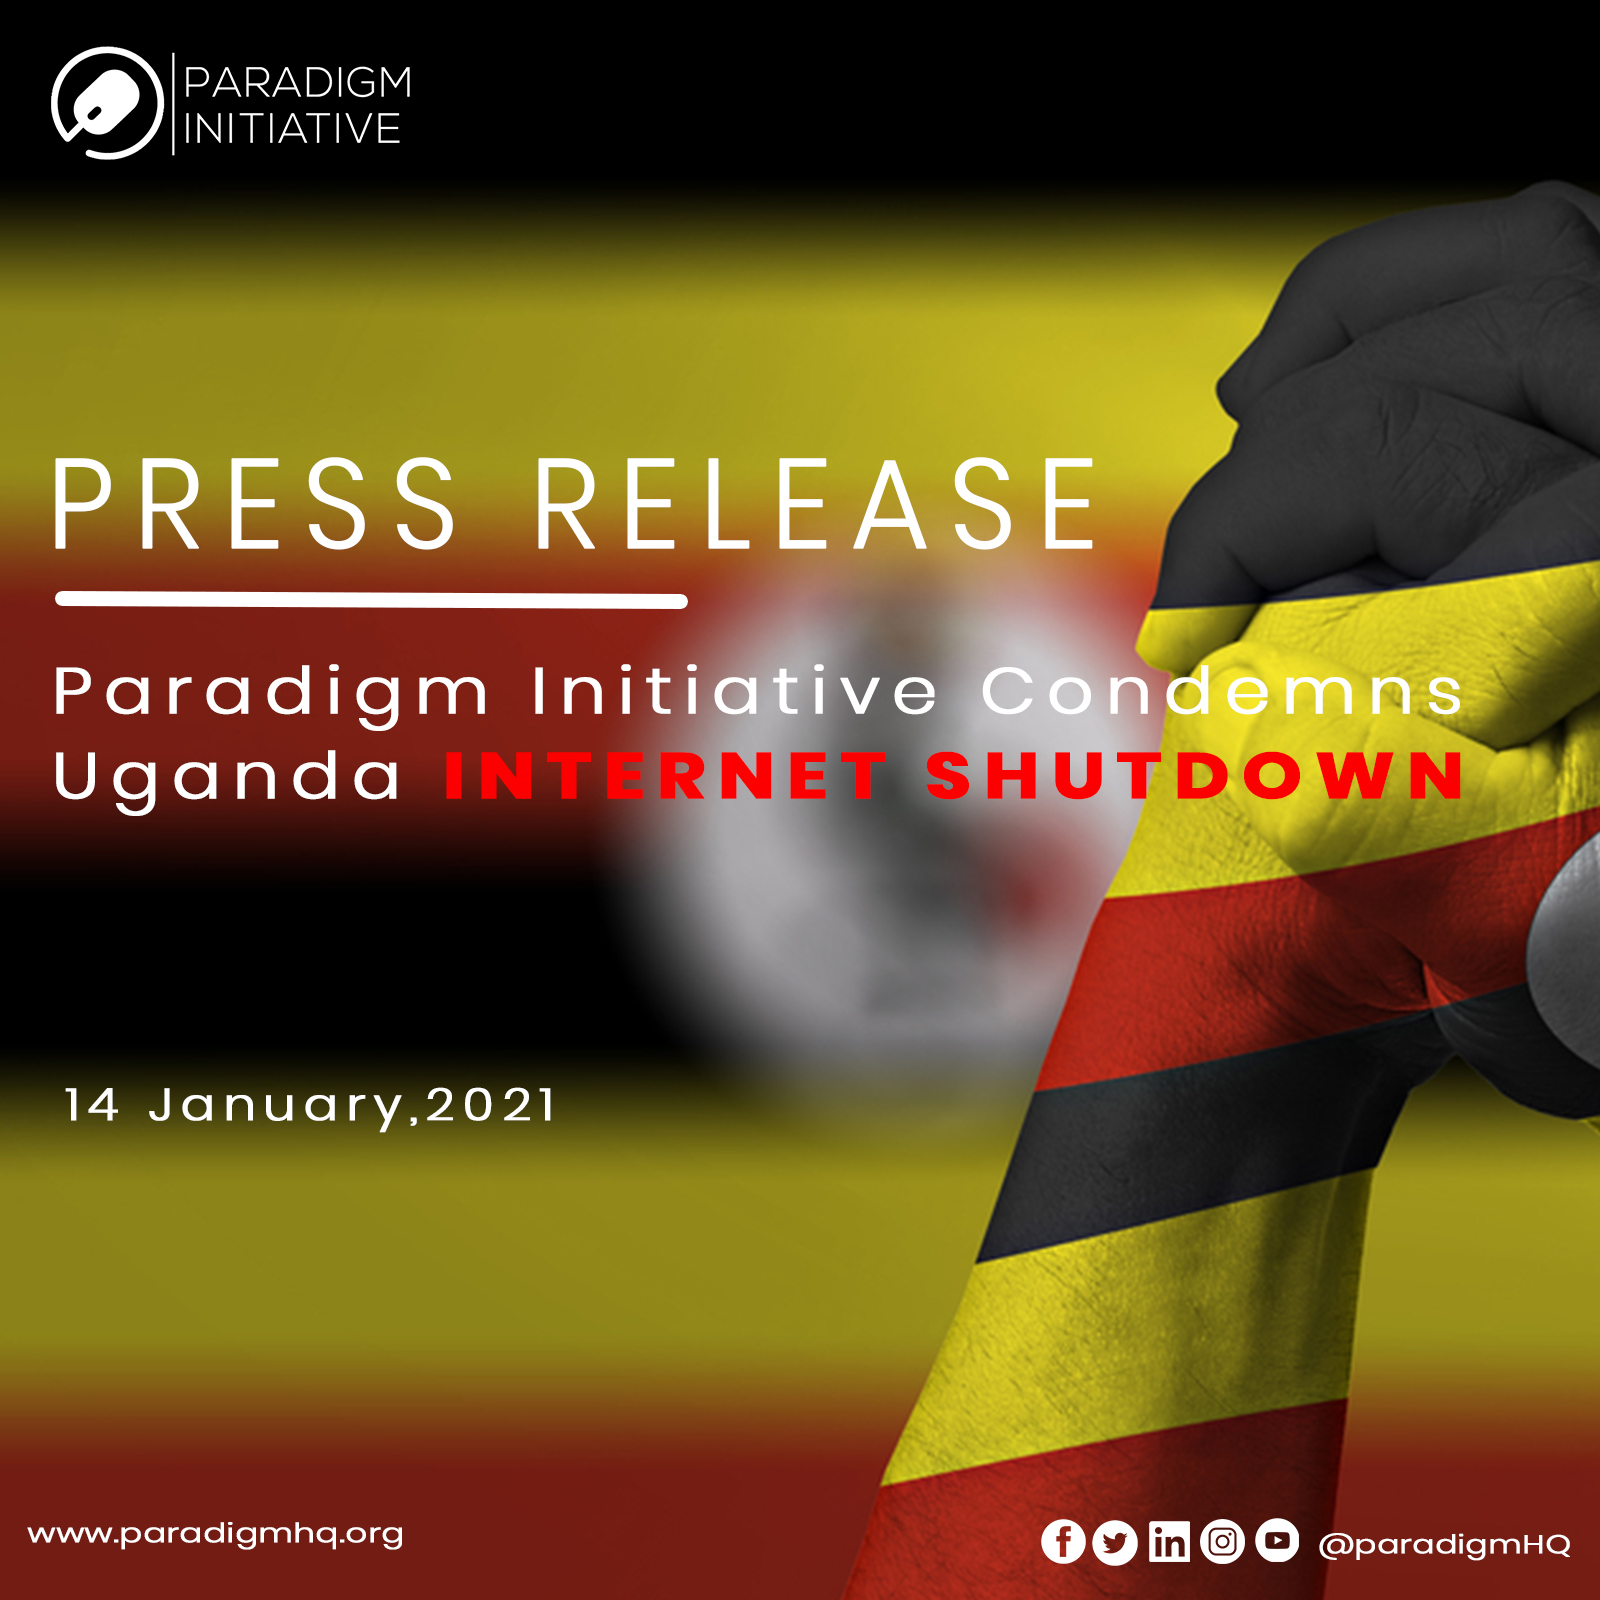 Press Release: Paradigm Initiative Condemns Uganda Internet Shutdown.